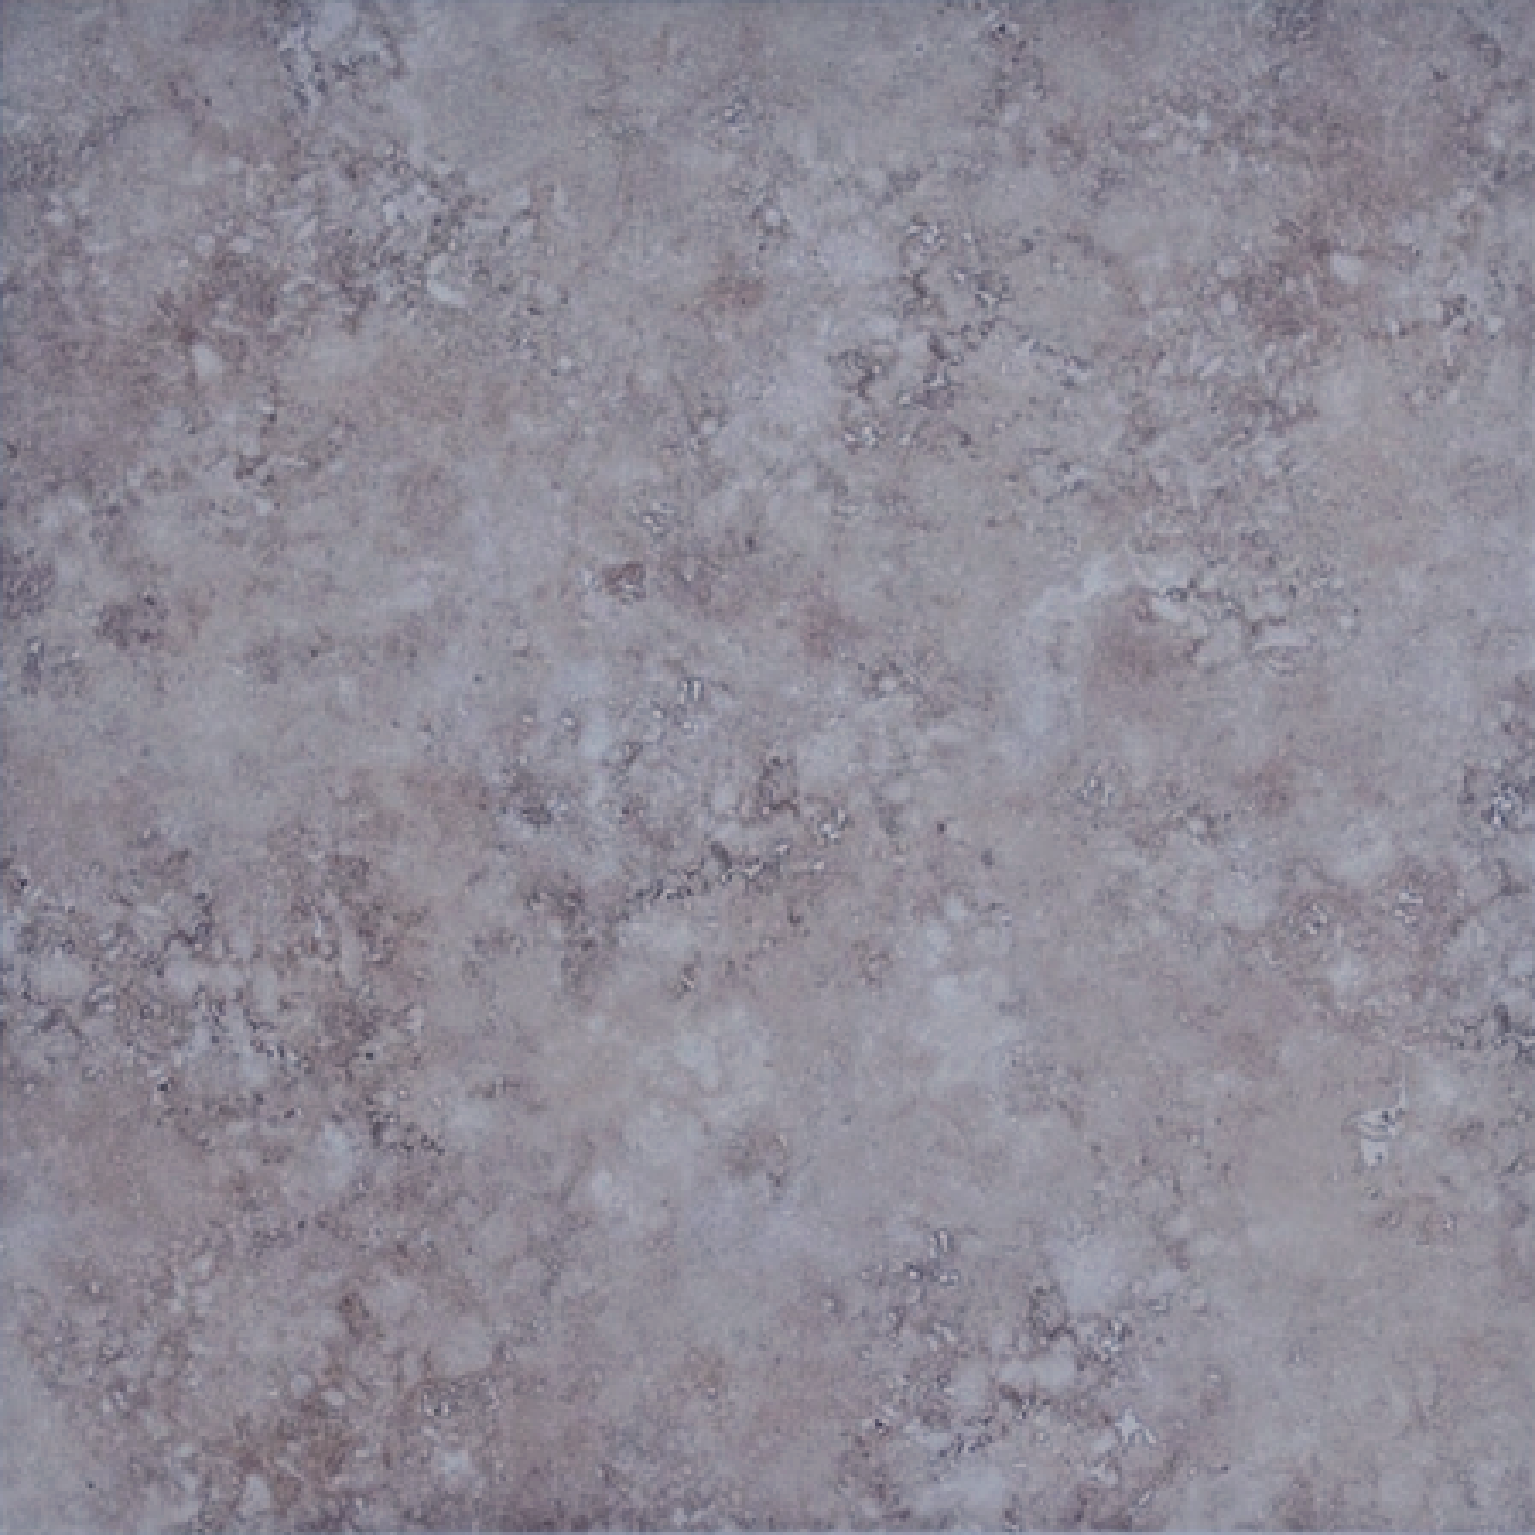 Floor tile porcelain rustic rotto series ra105 grey 20 x 20 floor tile porcelain rustic rotto series ra105 grey 20 x doublecrazyfo Choice Image